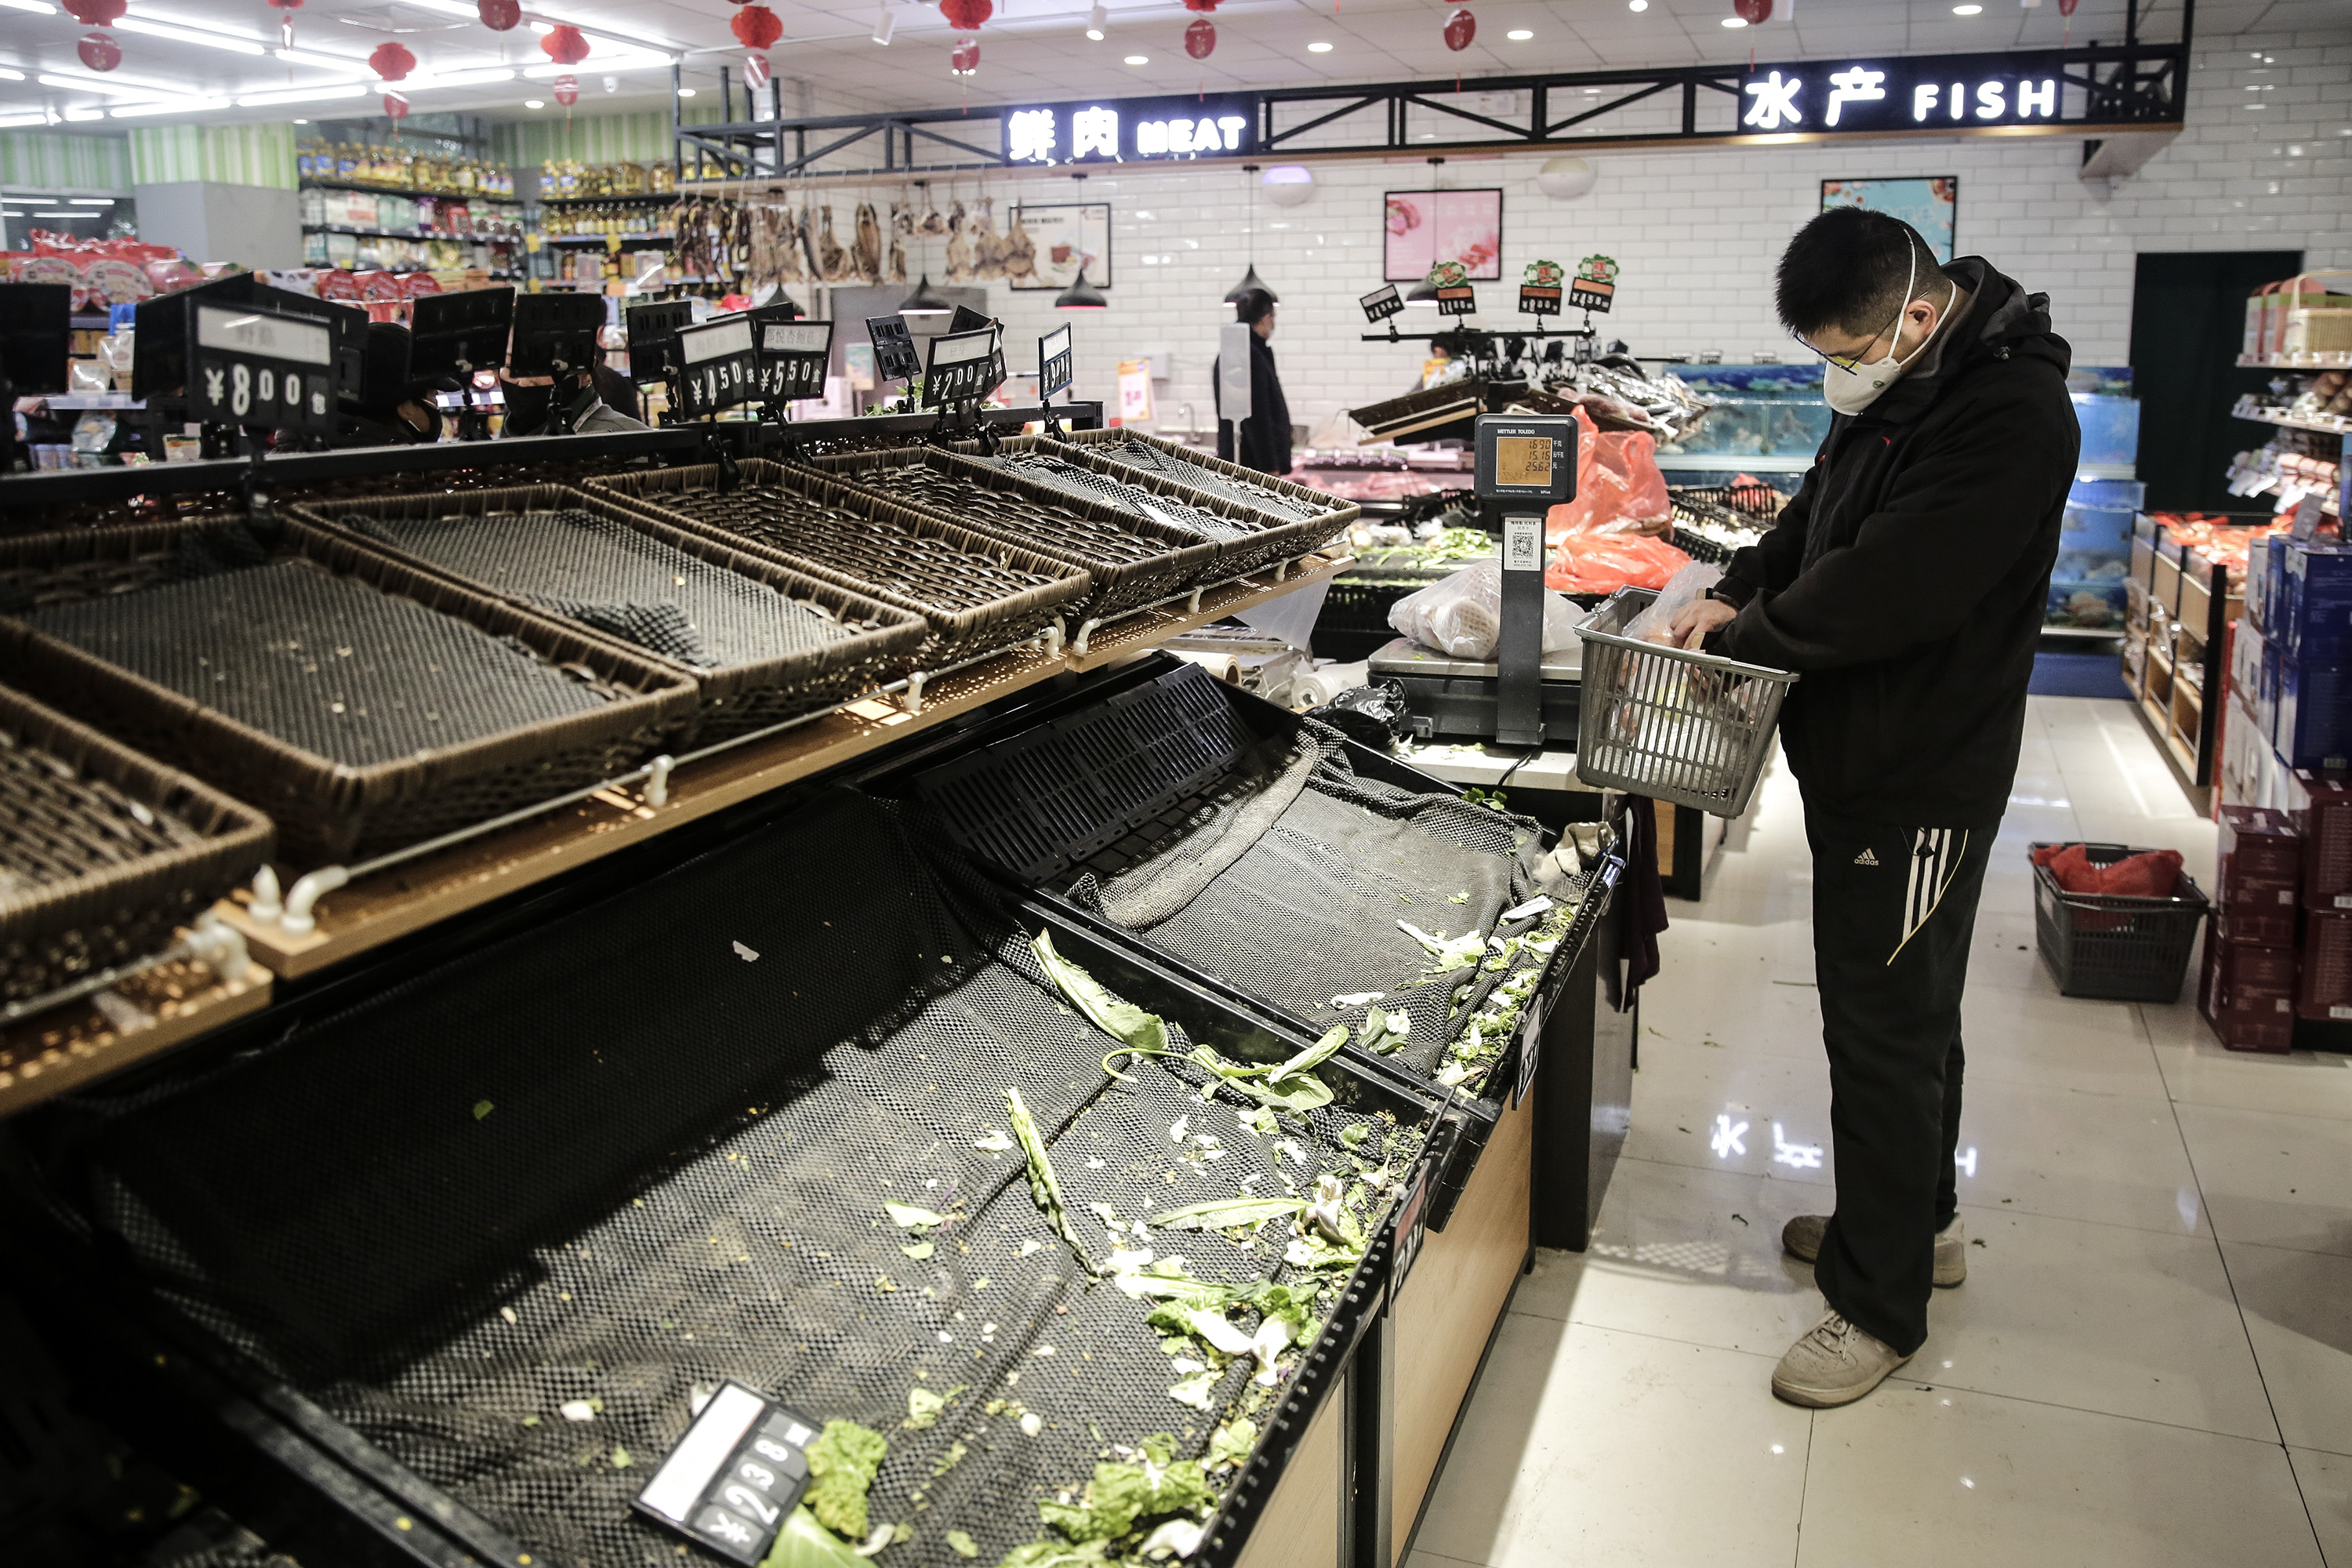 A resident wearing a mask shops for vegetables in Wuhan on January 23. Getty Images